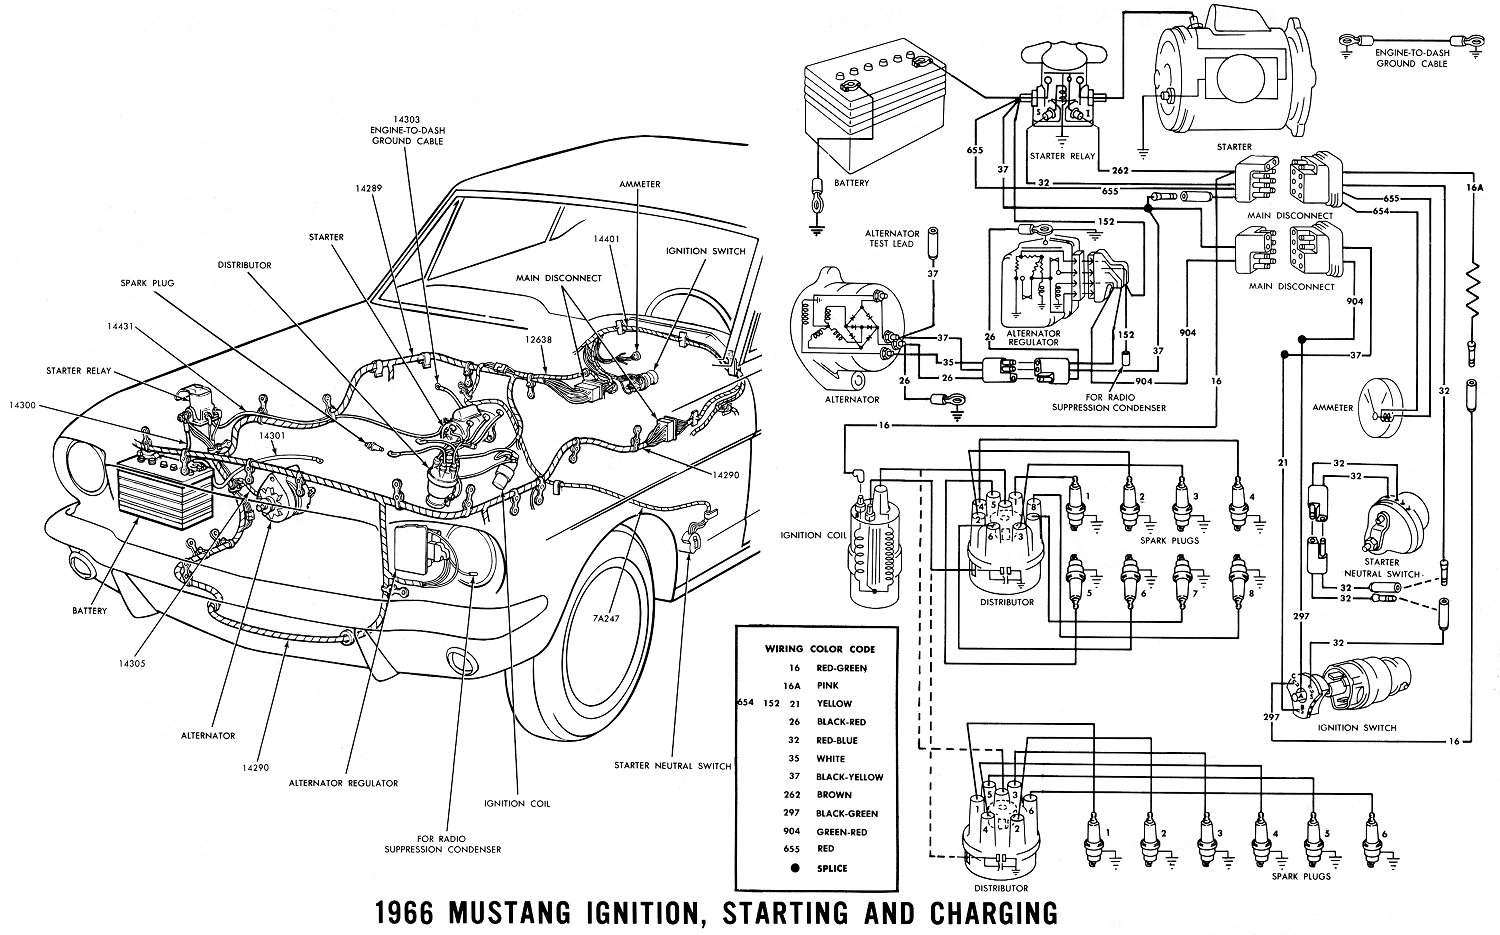 66ignit 1966 mustang wiring diagrams average joe restoration 1968 ford mustang wiring diagram at soozxer.org